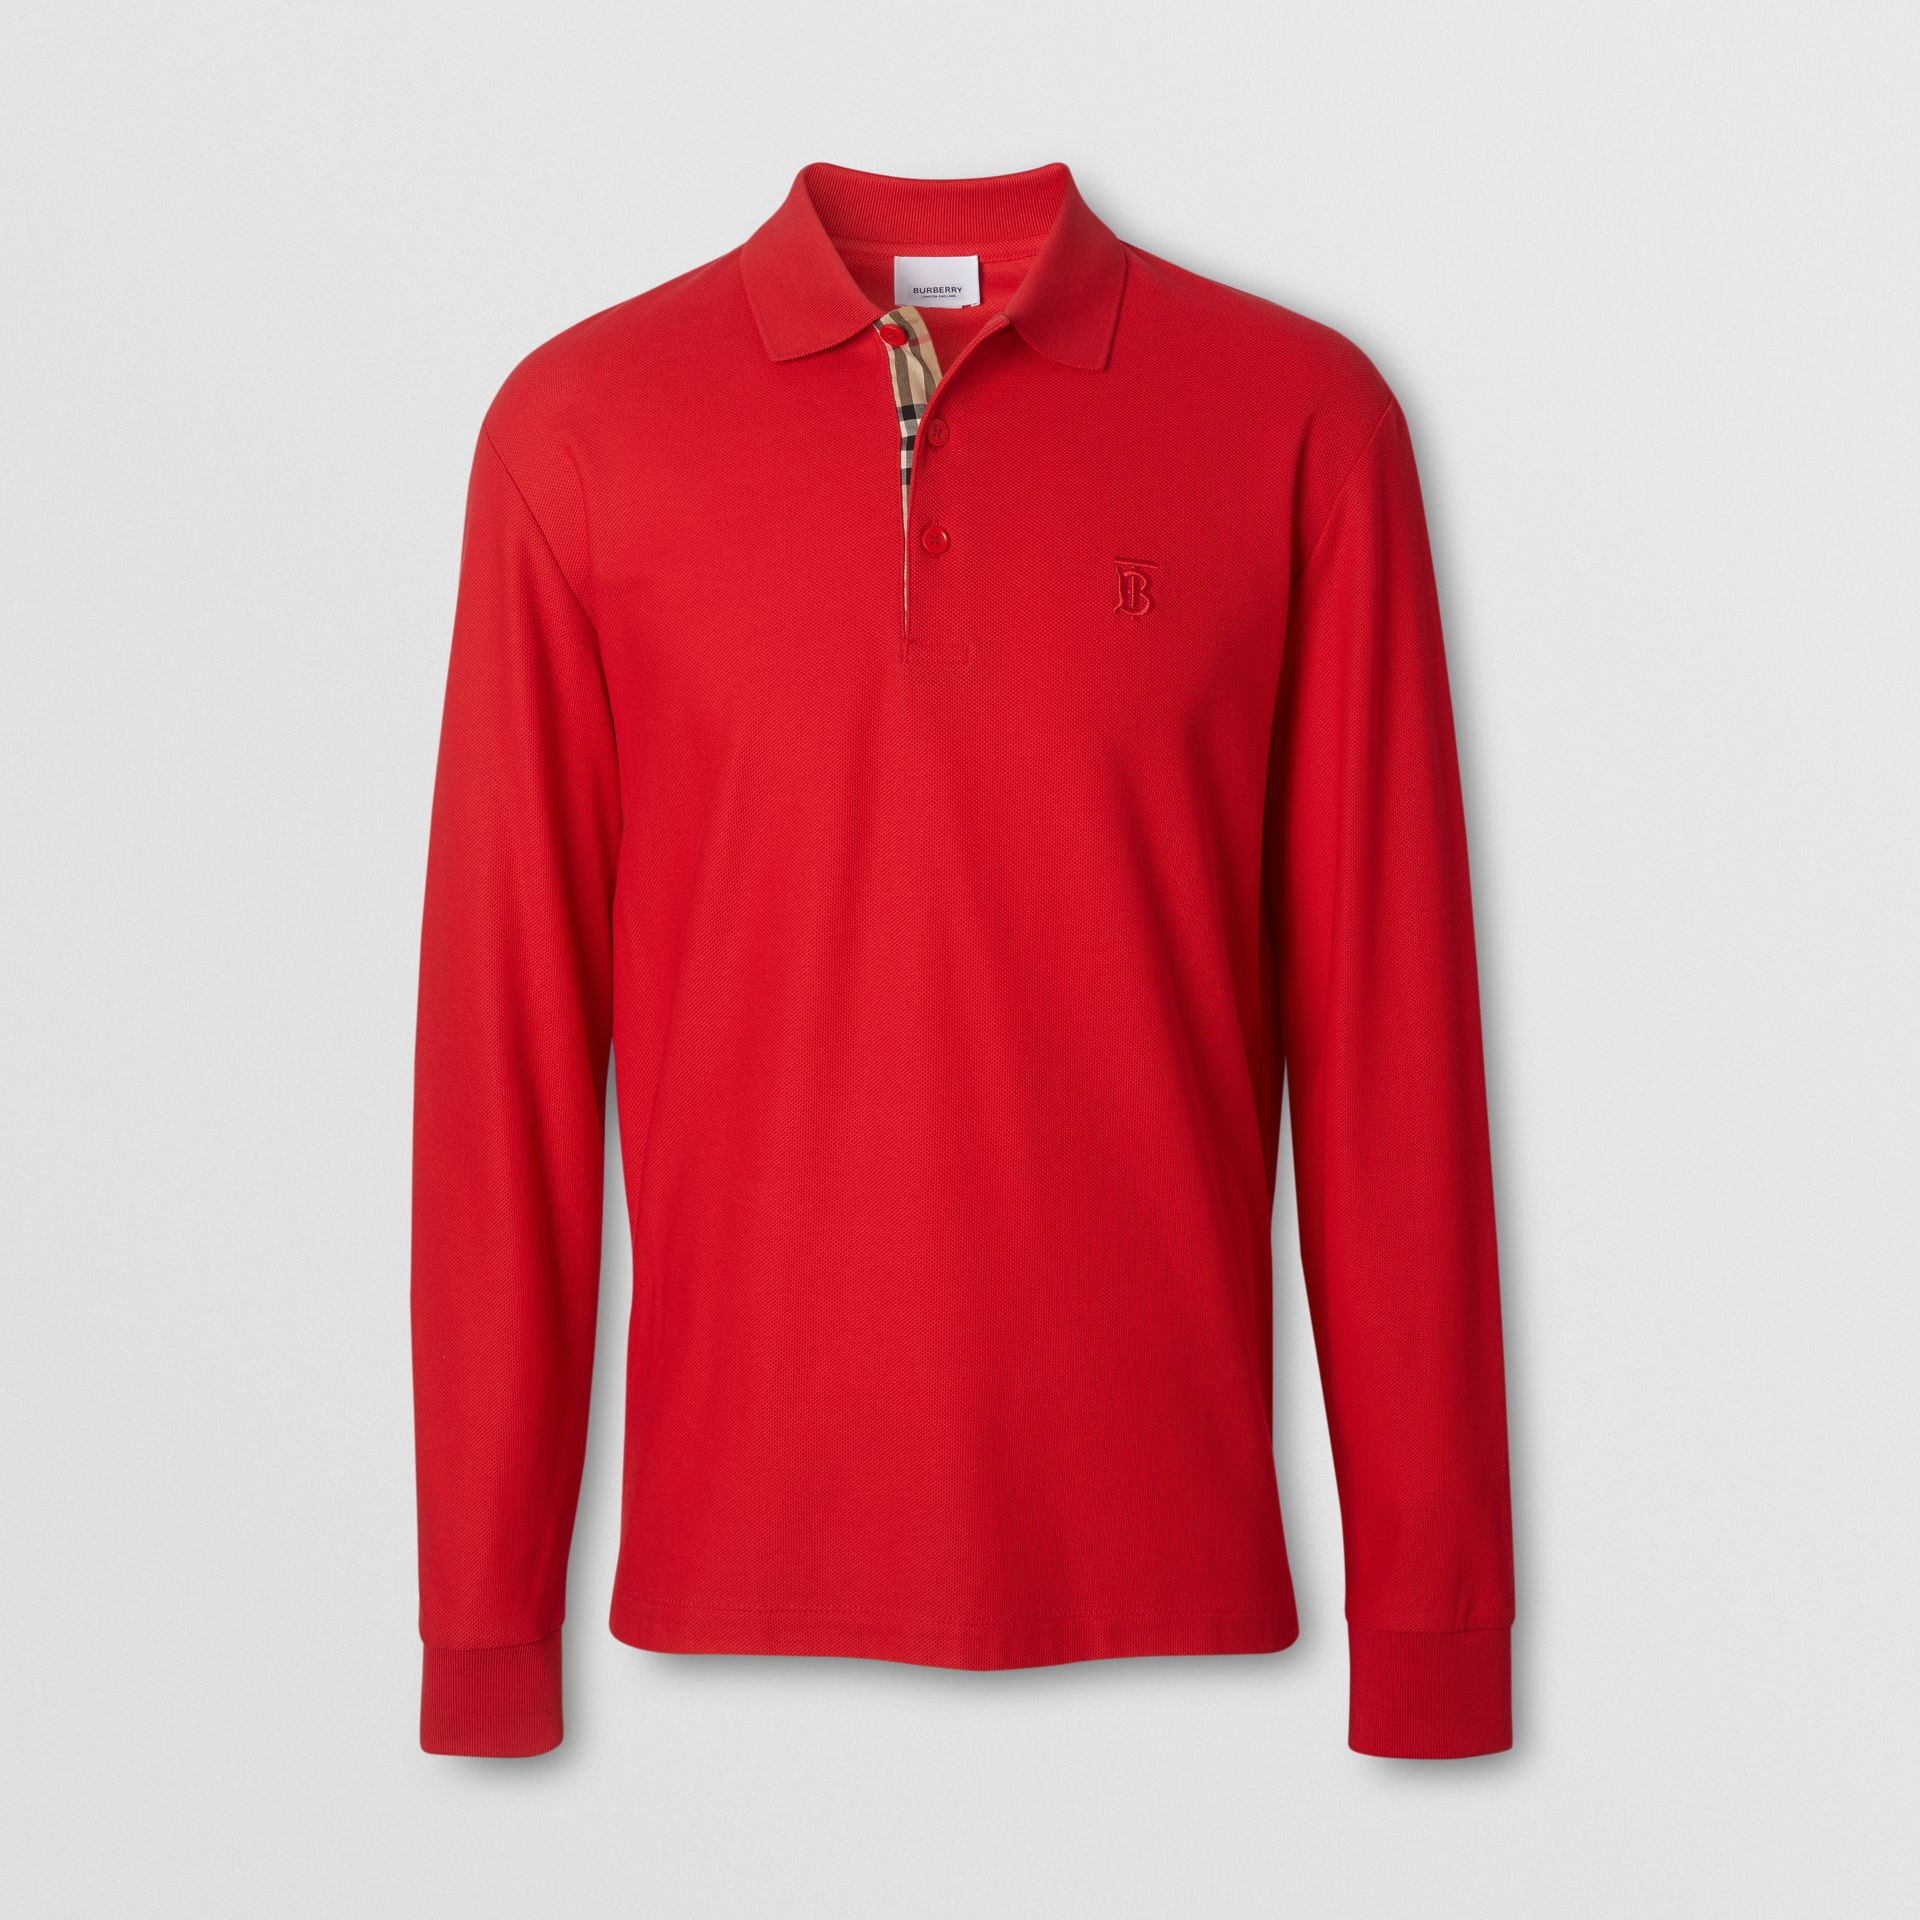 Long-sleeve Monogram Motif Cotton Piqué Polo Shirt in Bright Red - Men | Burberry - gallery image 3